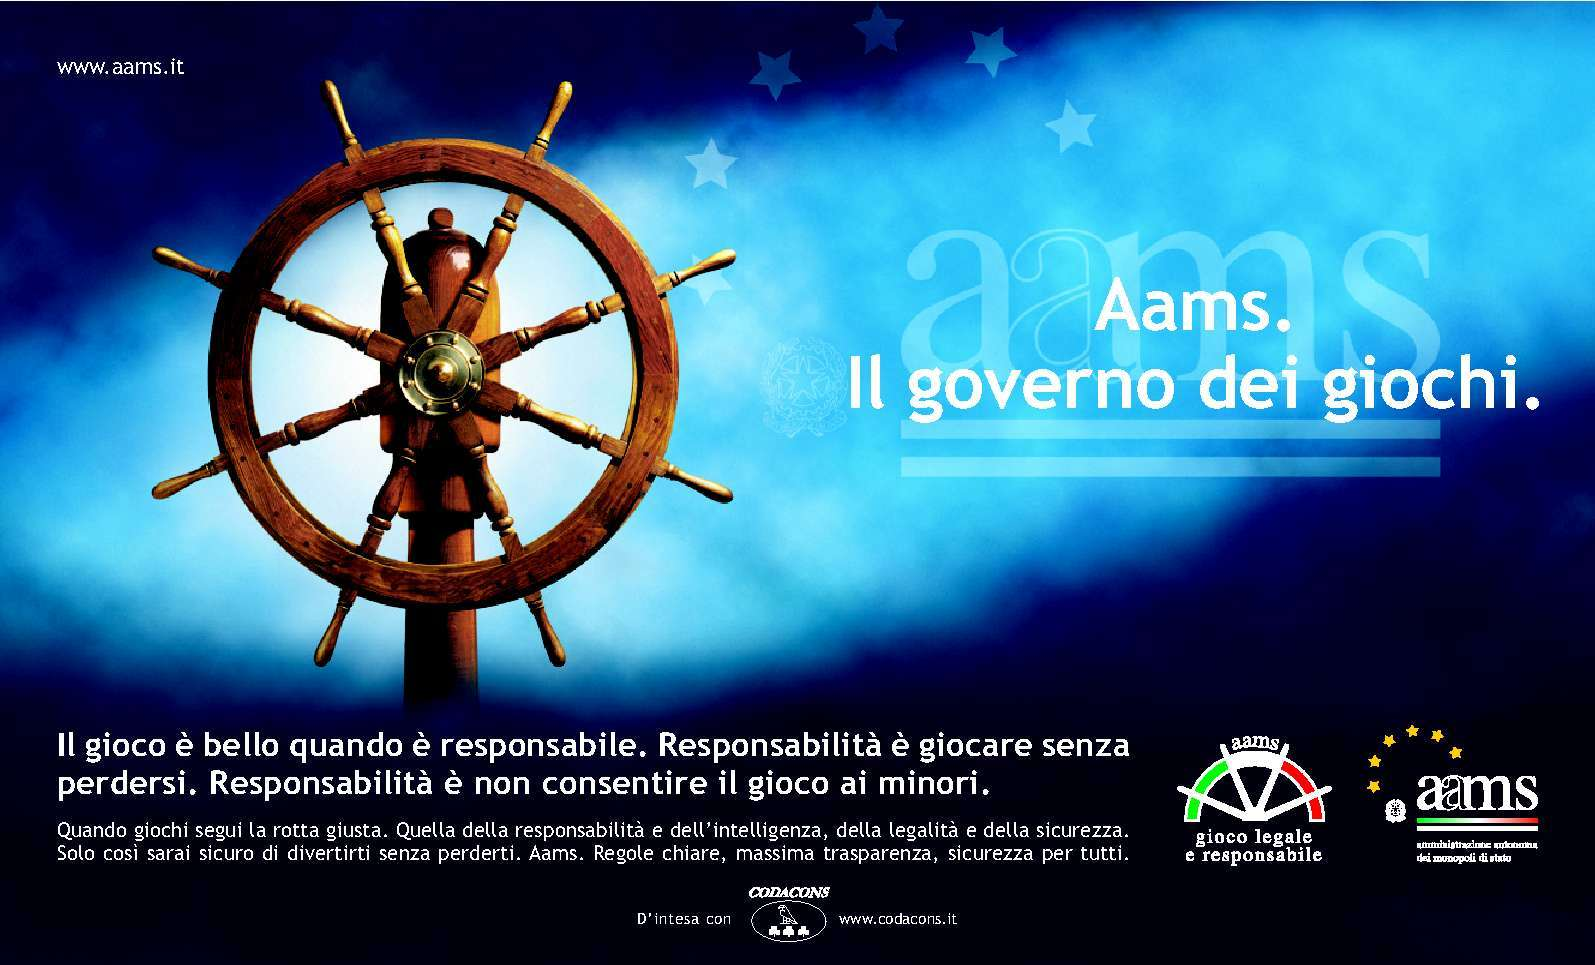 casino online legali aams governo